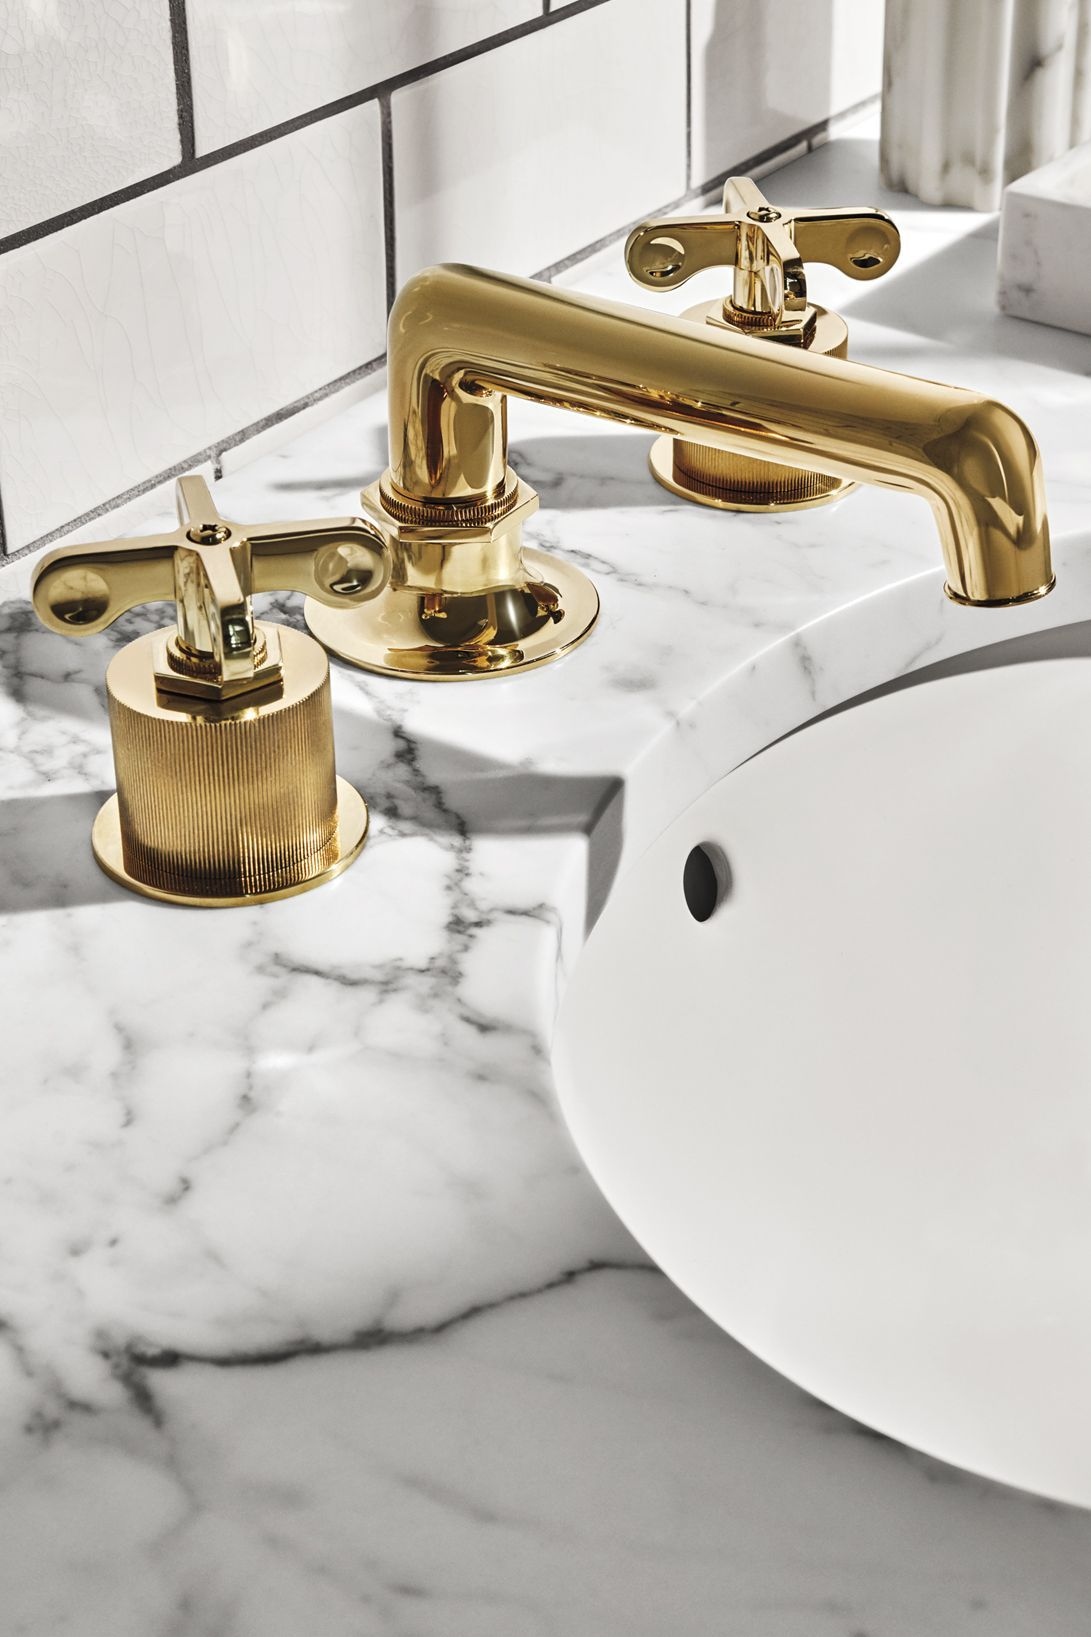 Henry Low Profile Three Hole Deck Mounted Lavatory Faucet